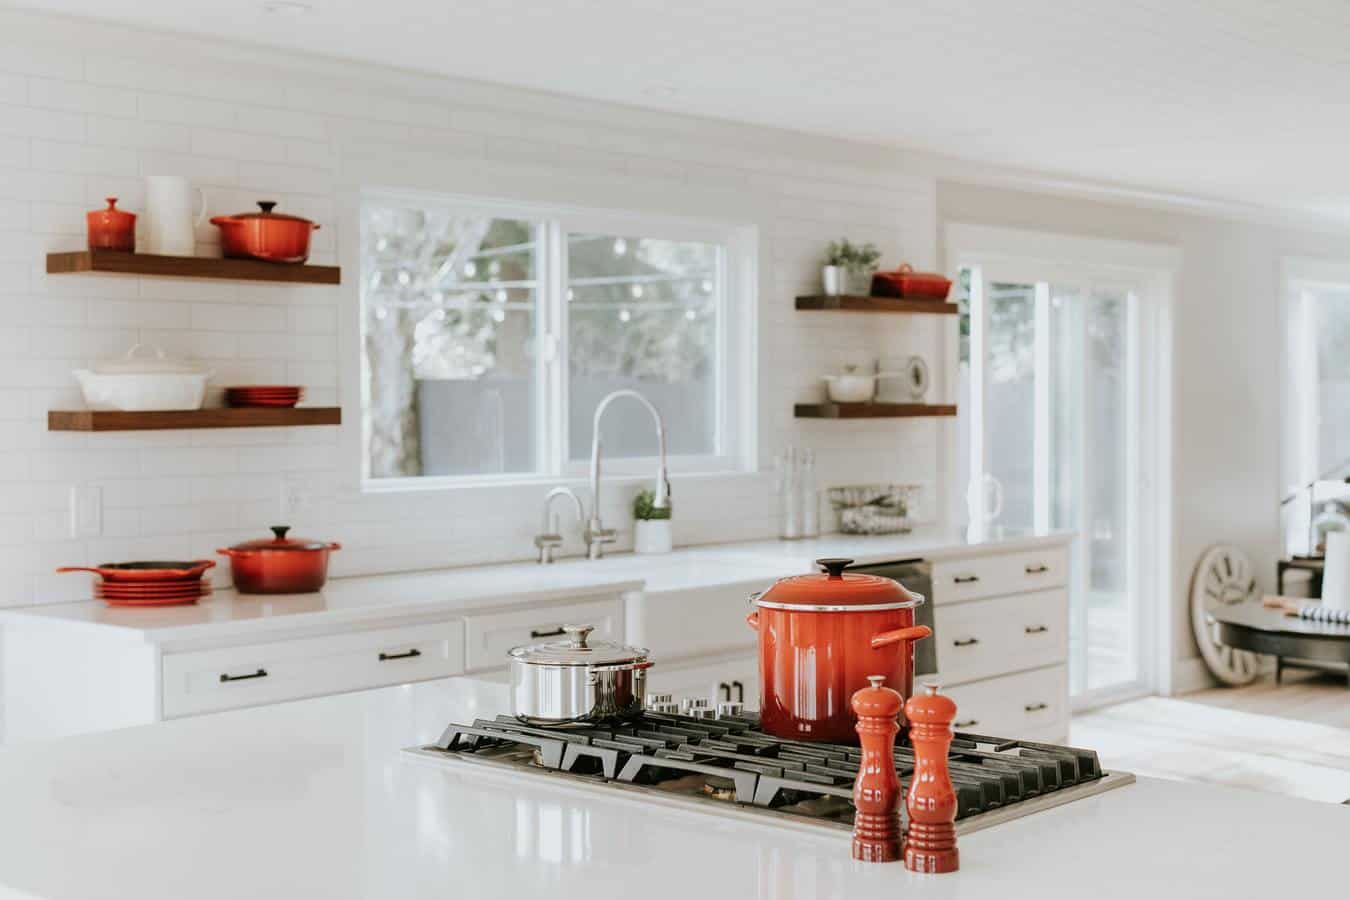 How to Organize a Comfy and Functional Kitchen